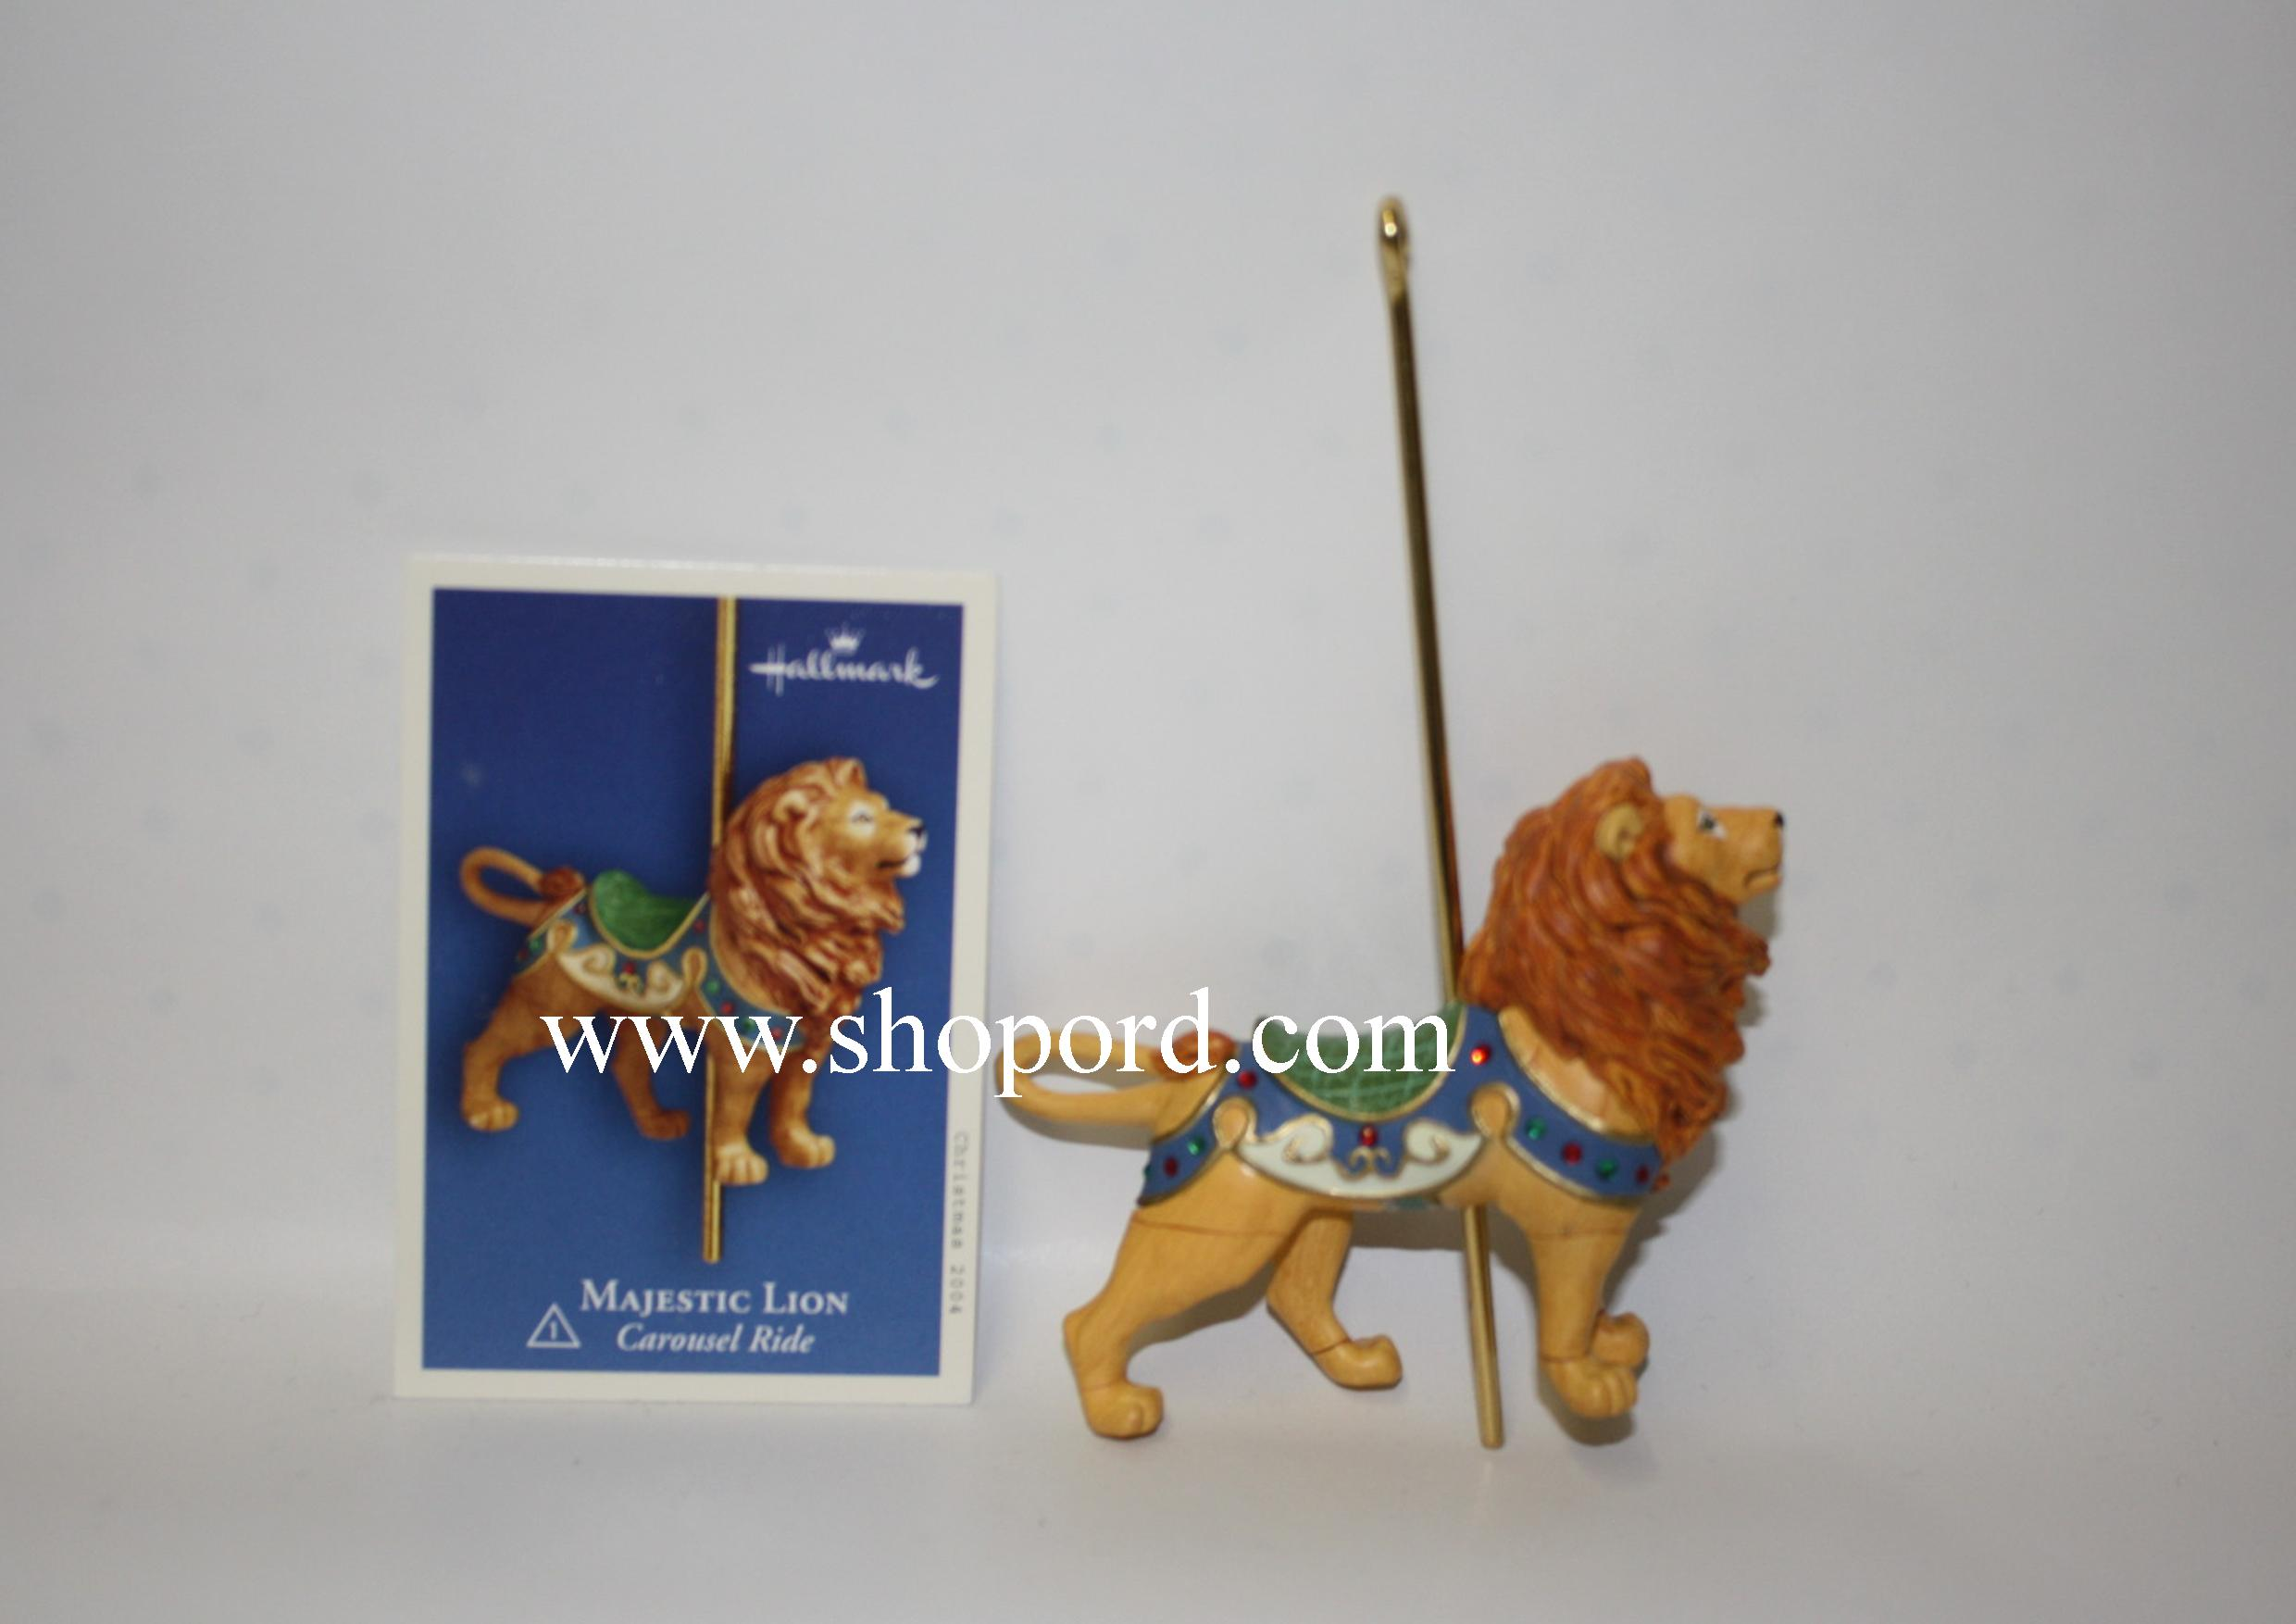 Hallmark 2004 Majestic Lion 1st in the Carousel Ride series QX8464